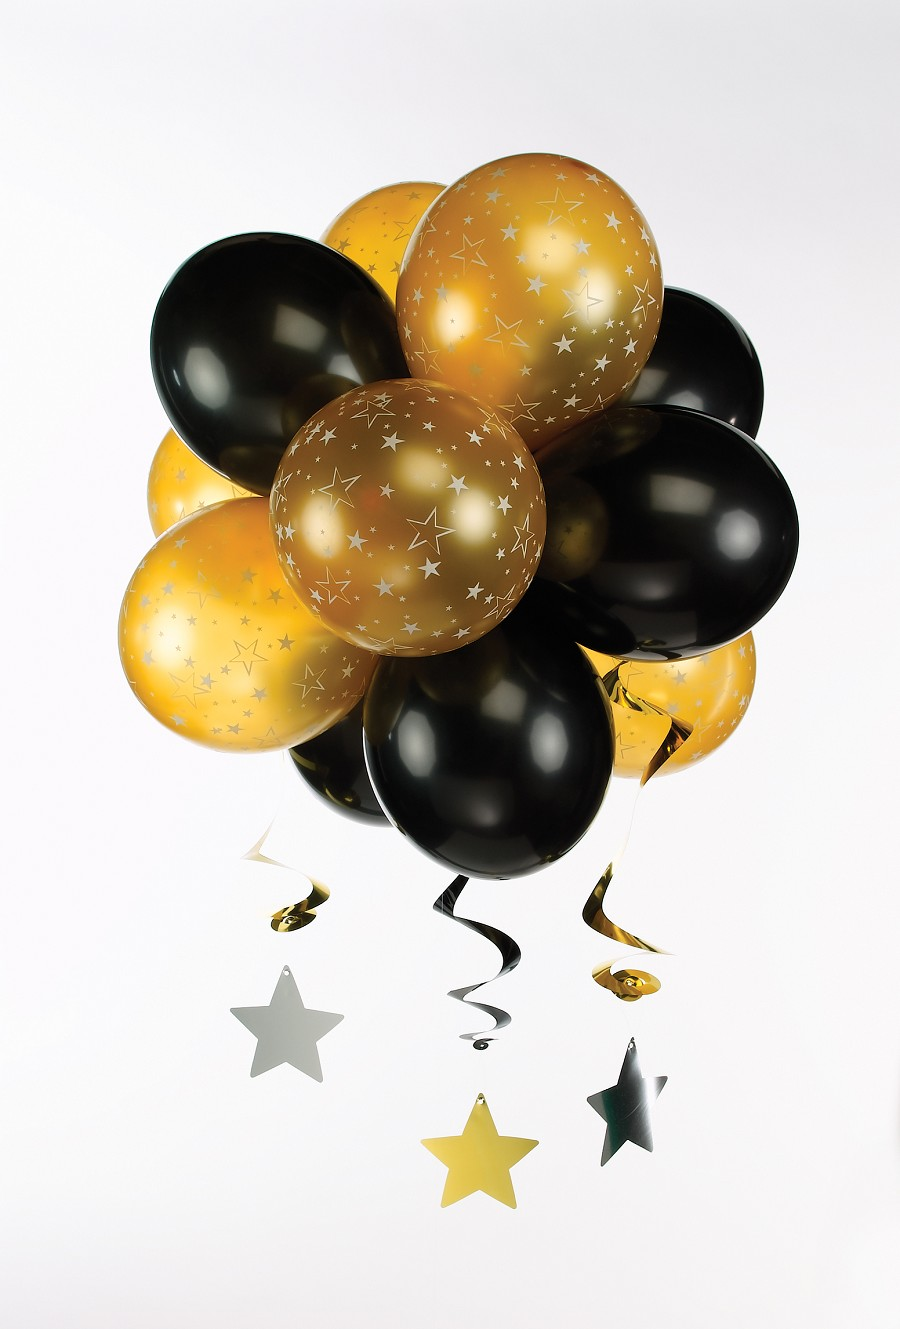 50th black balloons clipart image black and white library Free Birthday Cliparts Gold, Download Free Clip Art, Free Clip Art ... image black and white library